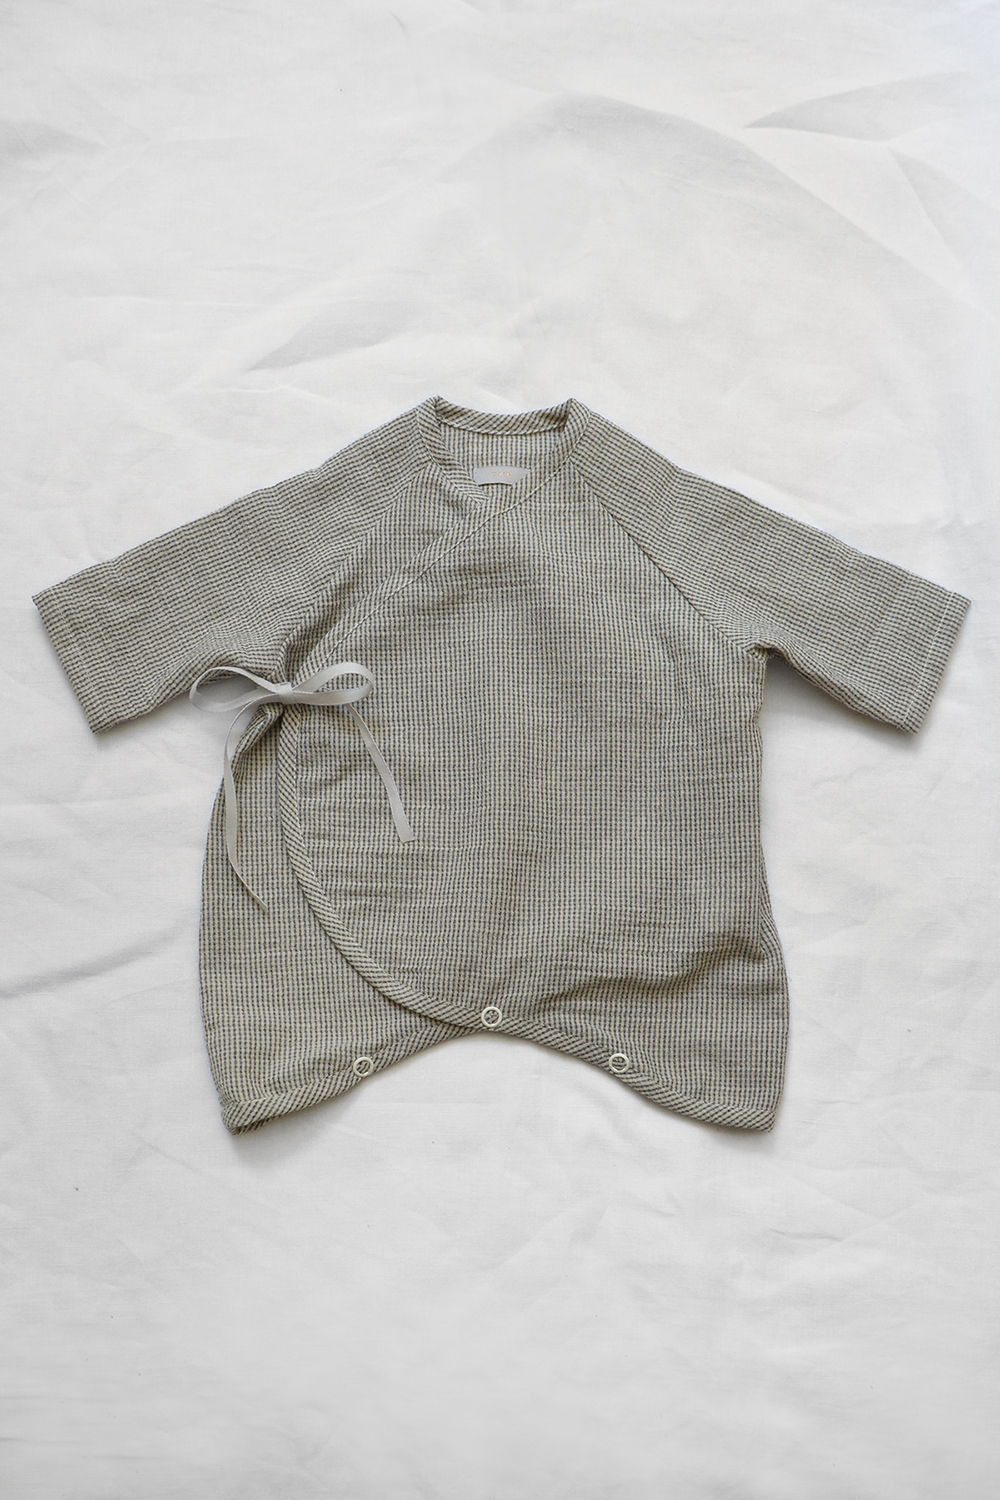 """Light weight and highly breathable baby kimono onesie """"Penn"""" in charcoal check laid flat on a white background. A GOTS certified baby clothes by Makie."""